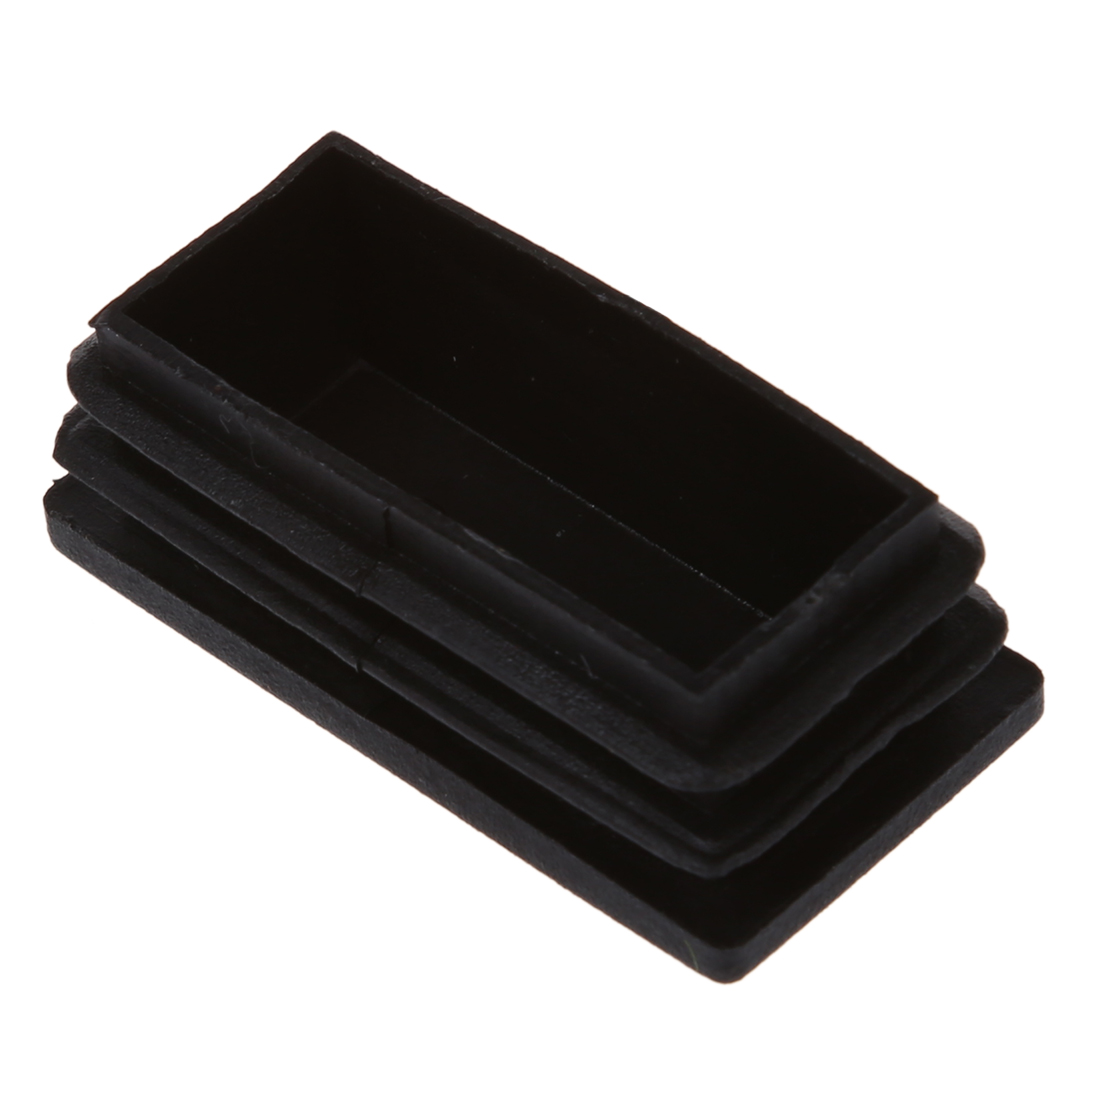 Plastic Rectangle Tube Inserts End Blanking Cap 25x50mm 10 Pcs Black